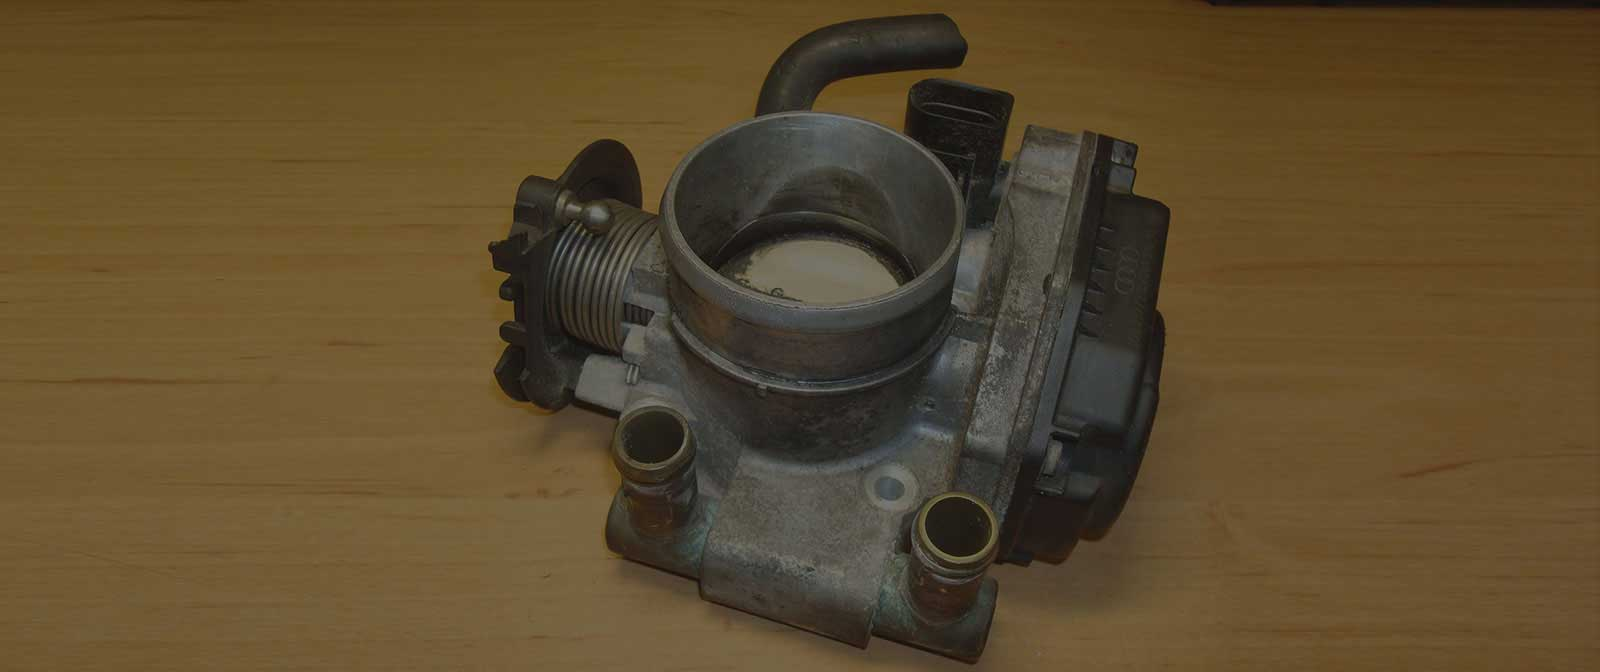 Audi throttle body for sale